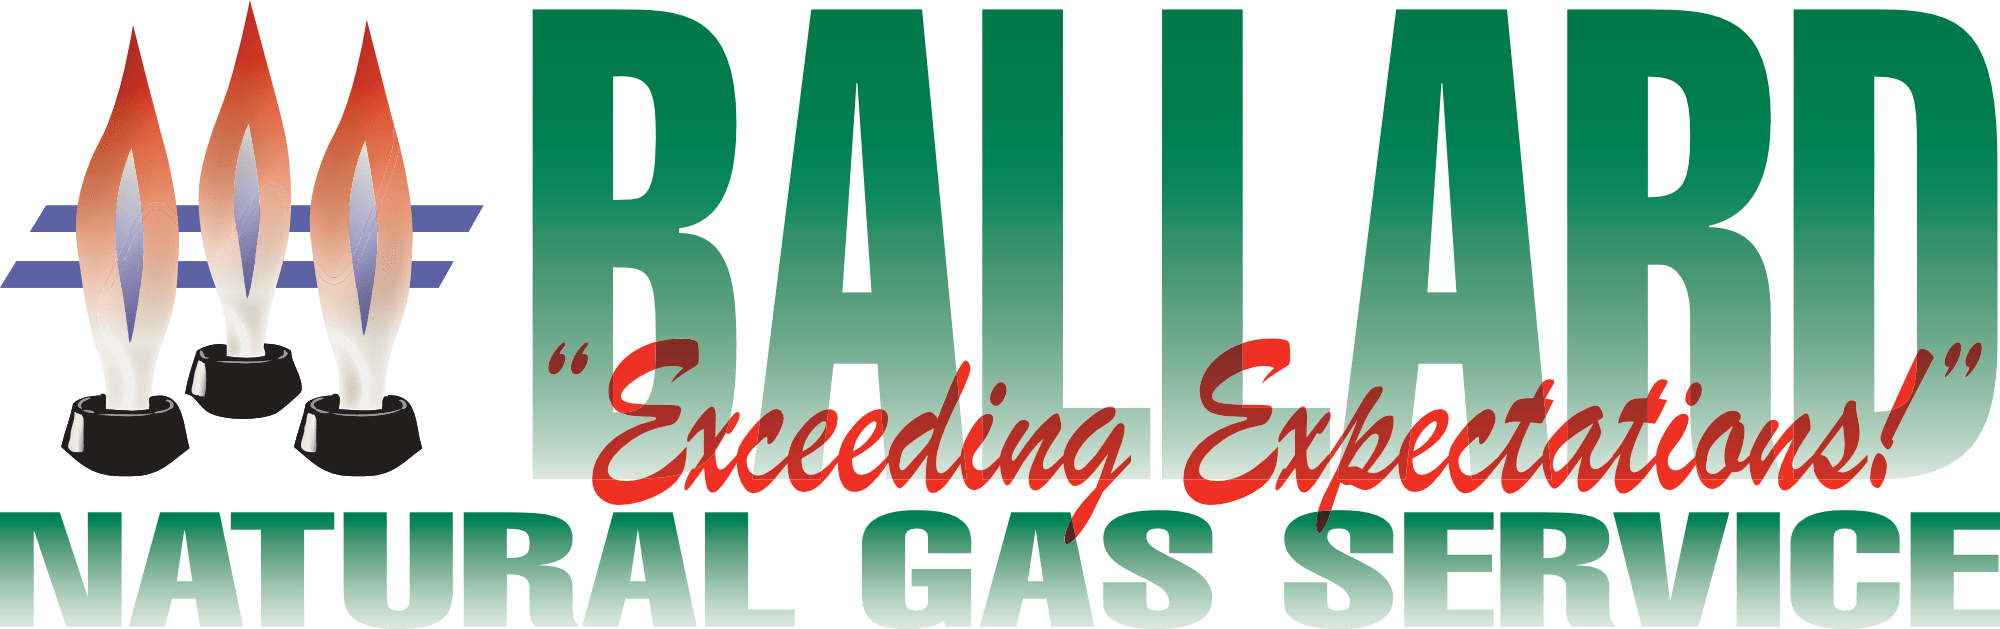 Ballard Natural Gas | HVAC | Heating and Cooling Services in